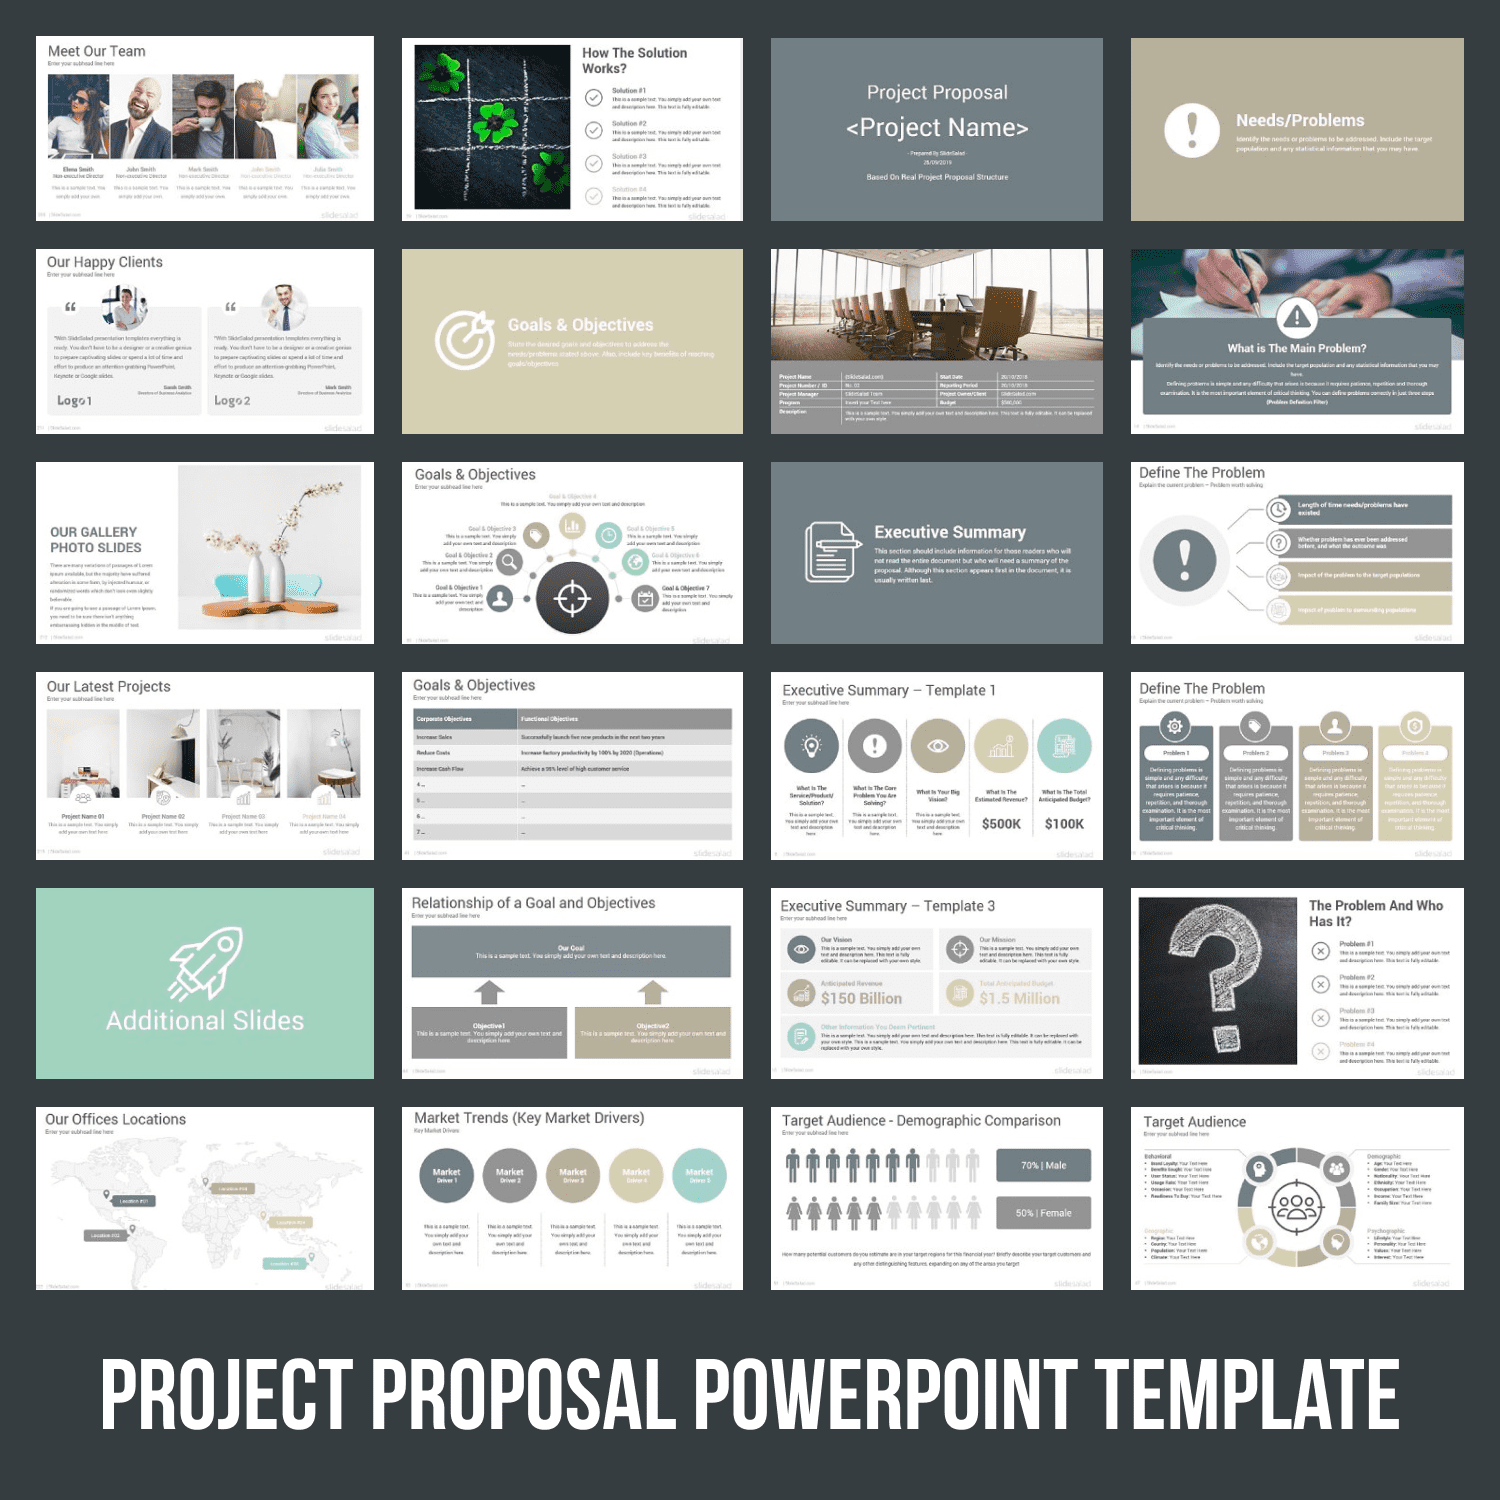 Project Proposal PowerPoint Template by MasterBundles.